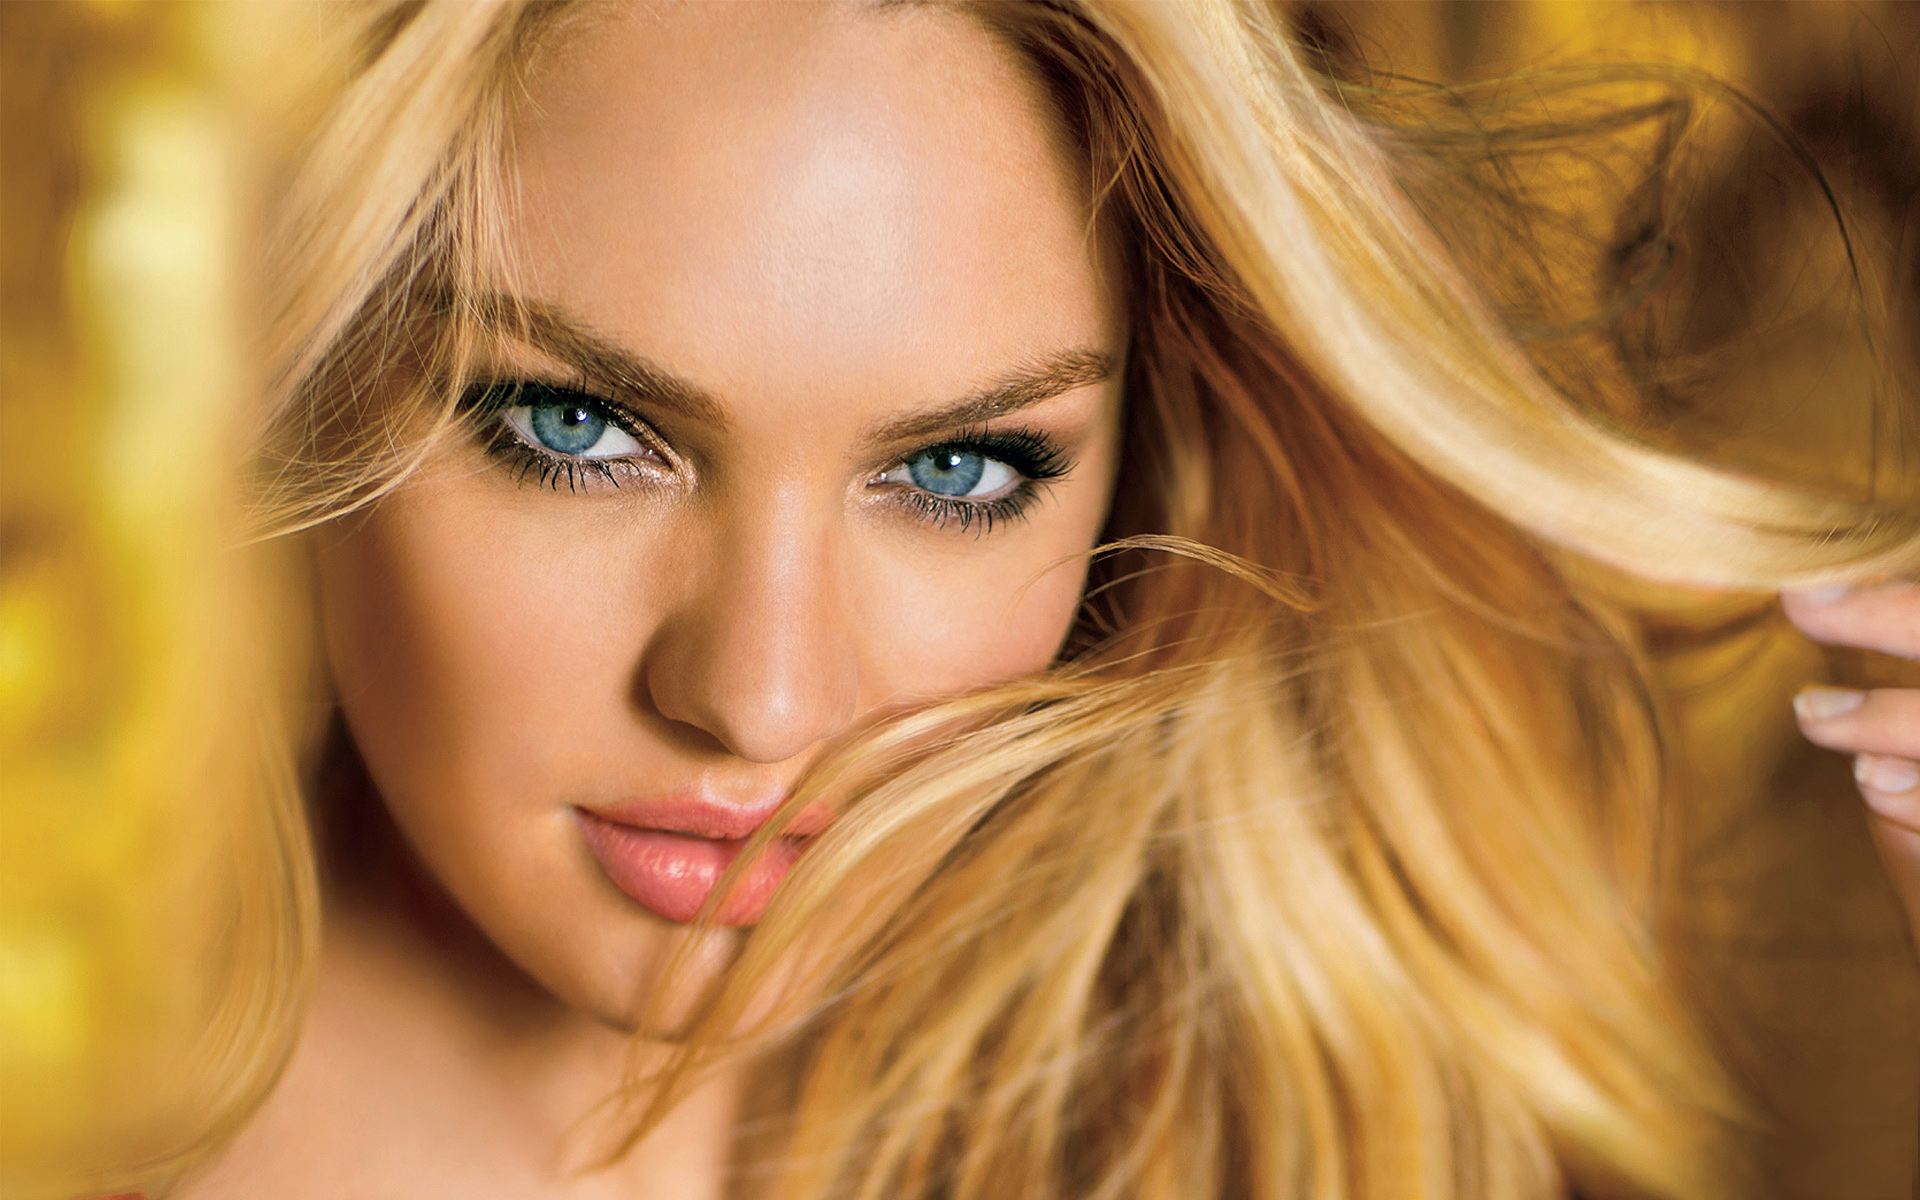 File Name Candice Swanepoel